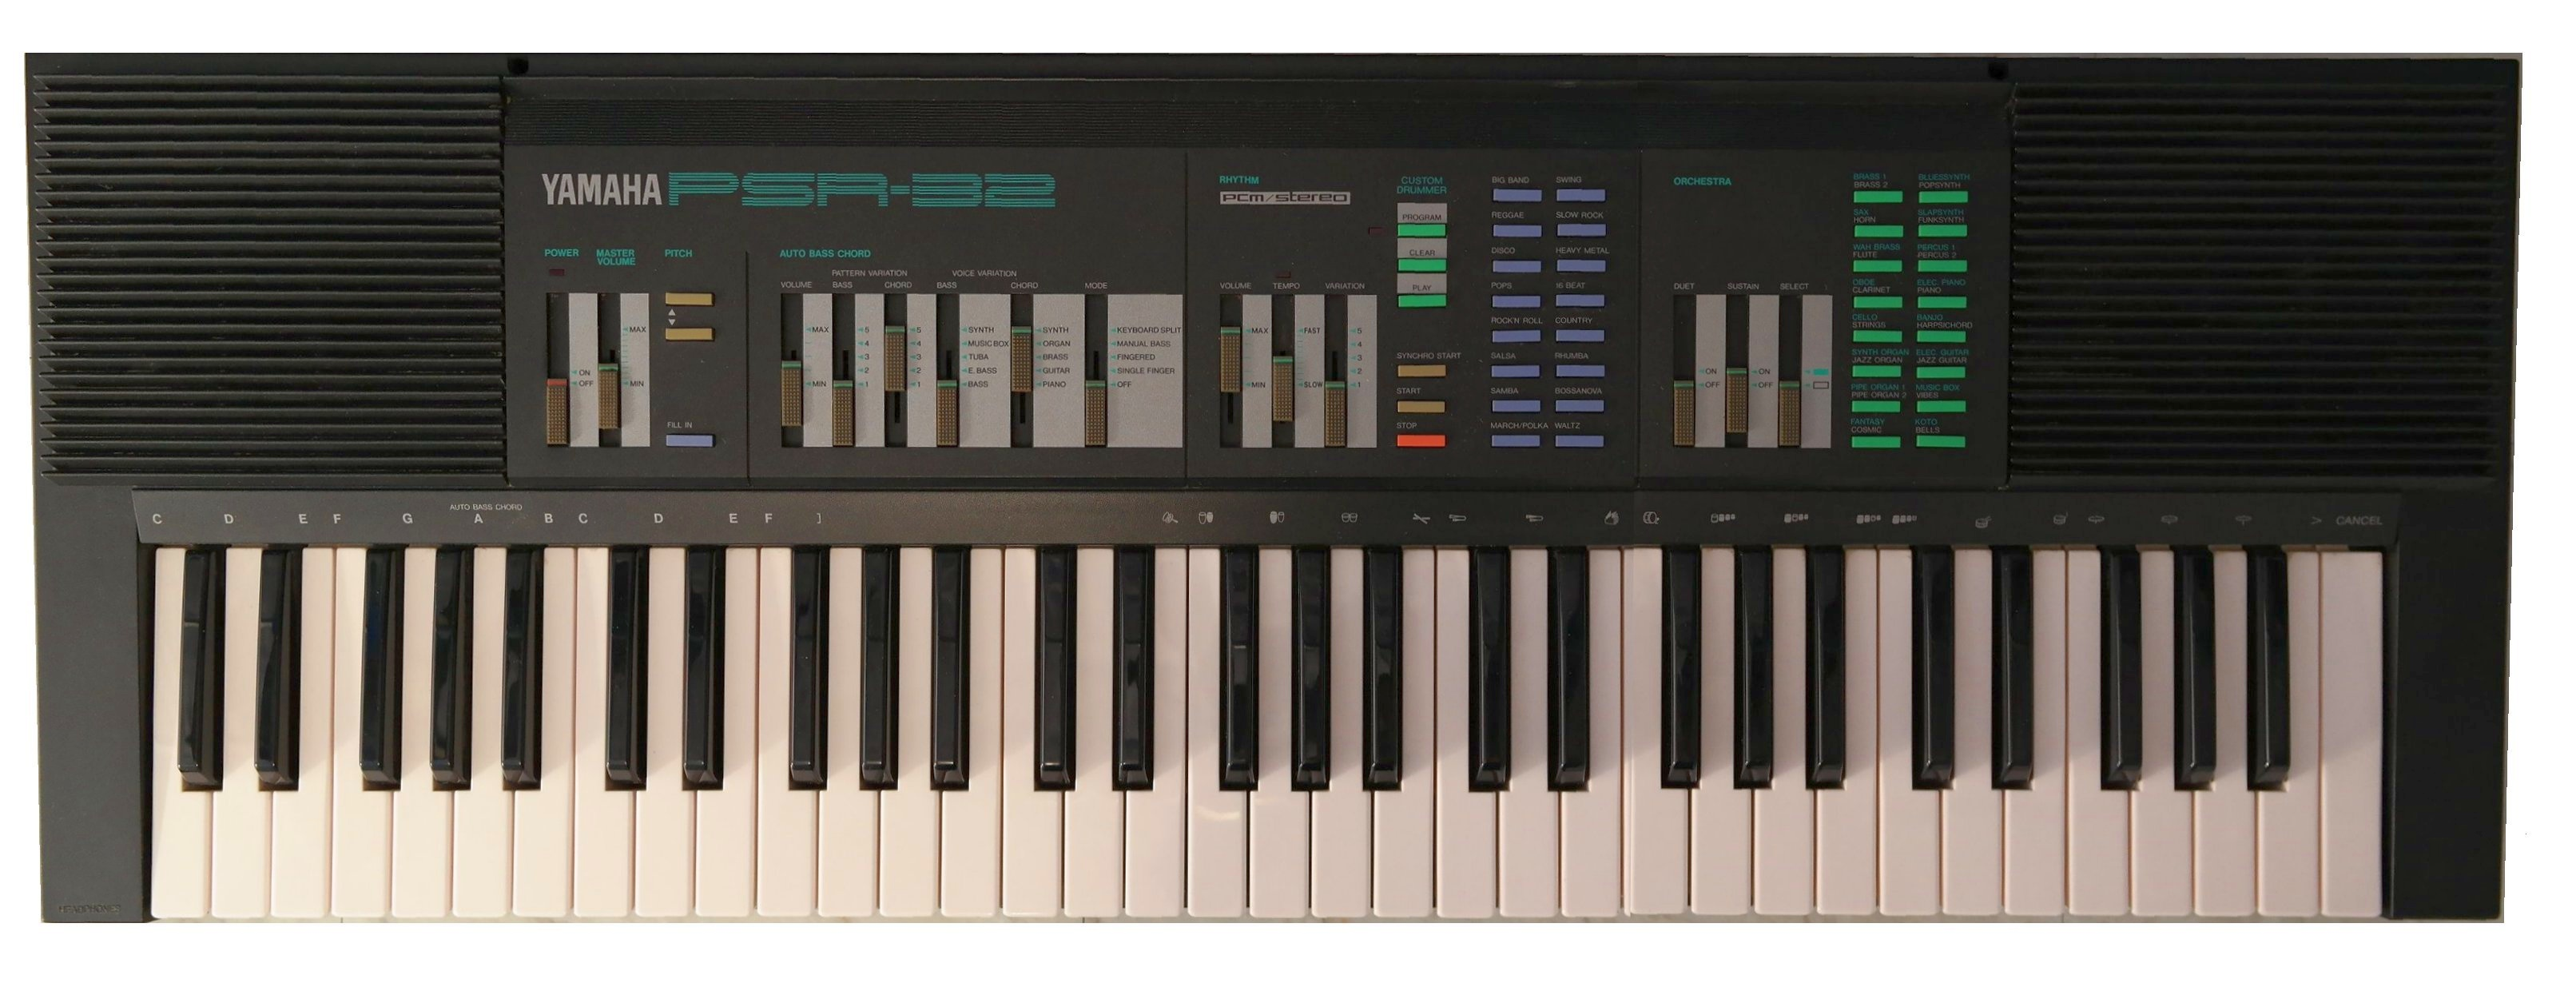 keyboard yamaha psr 31 psr 32 the 8 bit guy. Black Bedroom Furniture Sets. Home Design Ideas